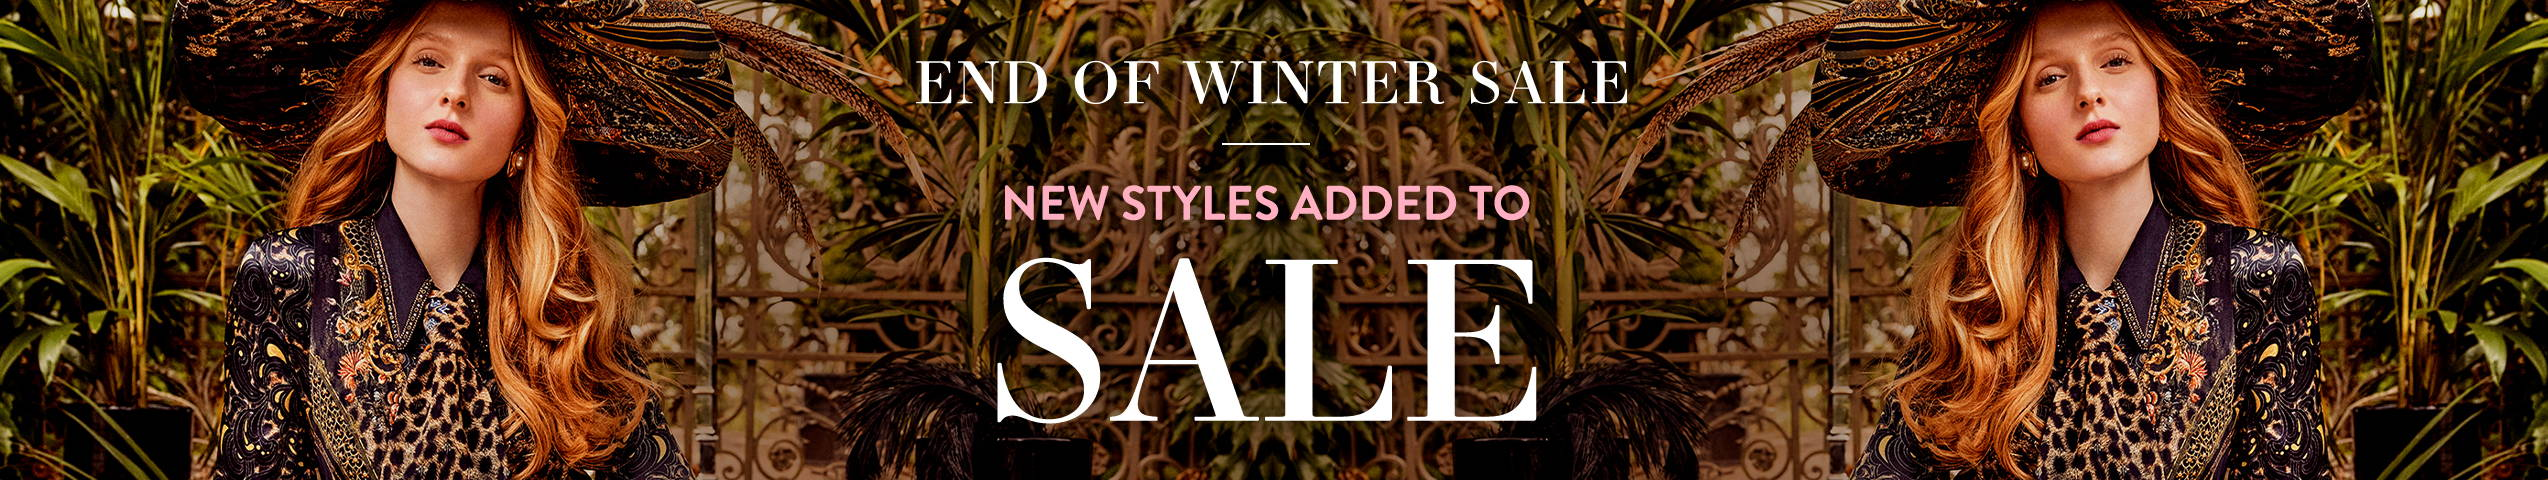 End Of Winter Sale, New Prints Added To SALE